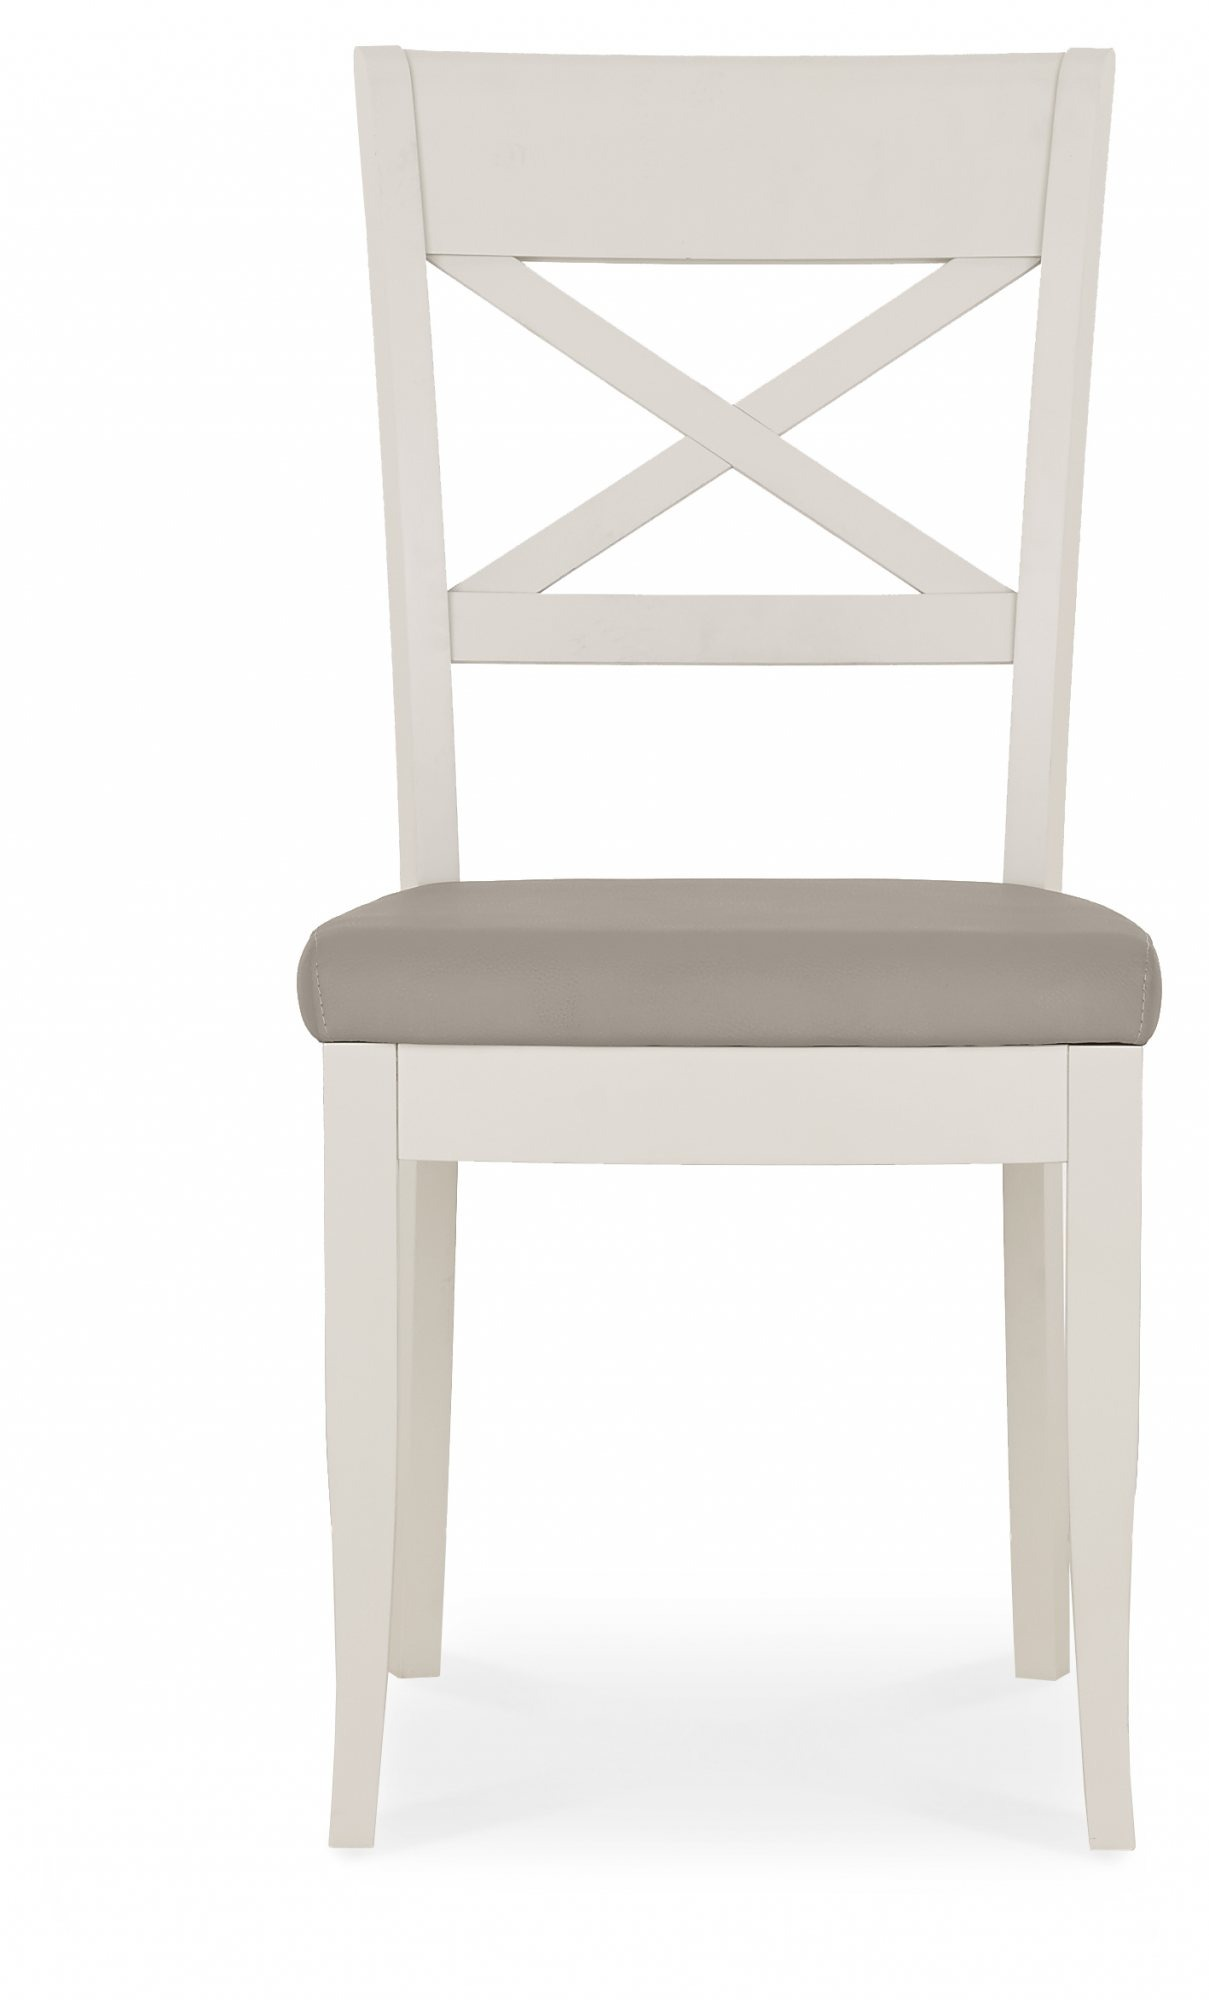 MONICA GREY DINING CHAIR - FRONT DETAIL